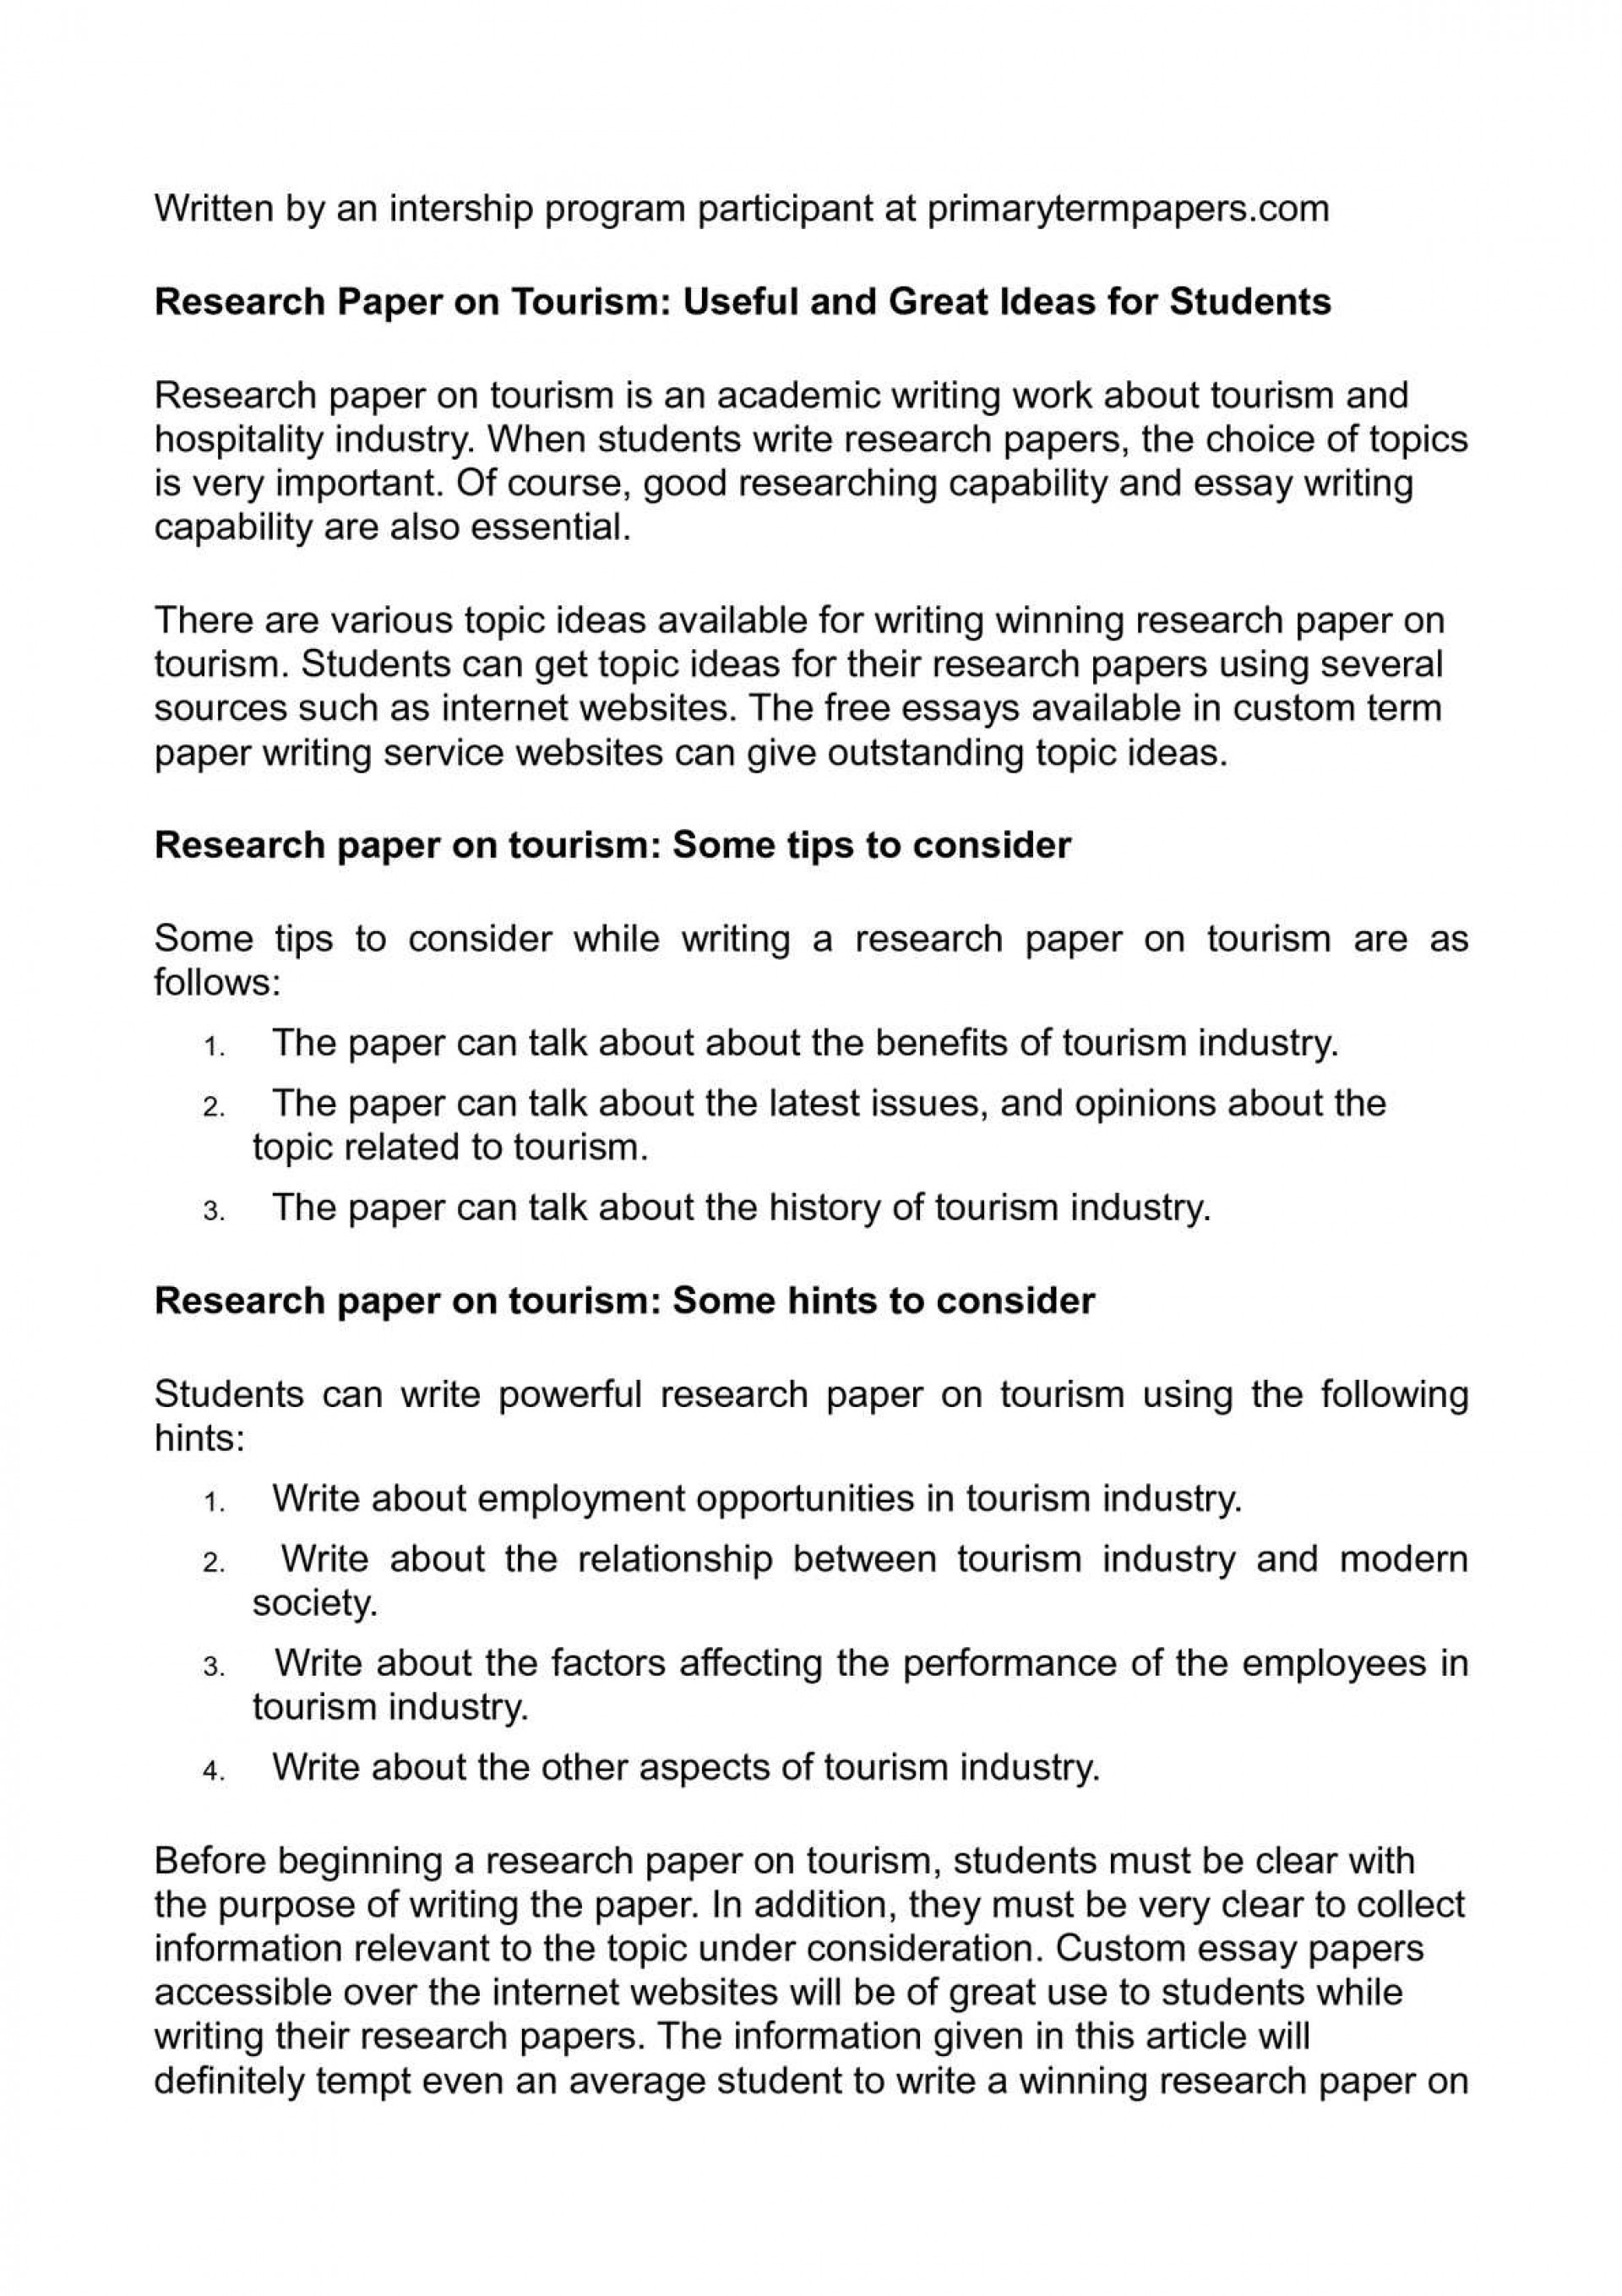 002 Research Paper Papers Ideas Surprising High School Topics 2017 About Education Topics- Sports 1920